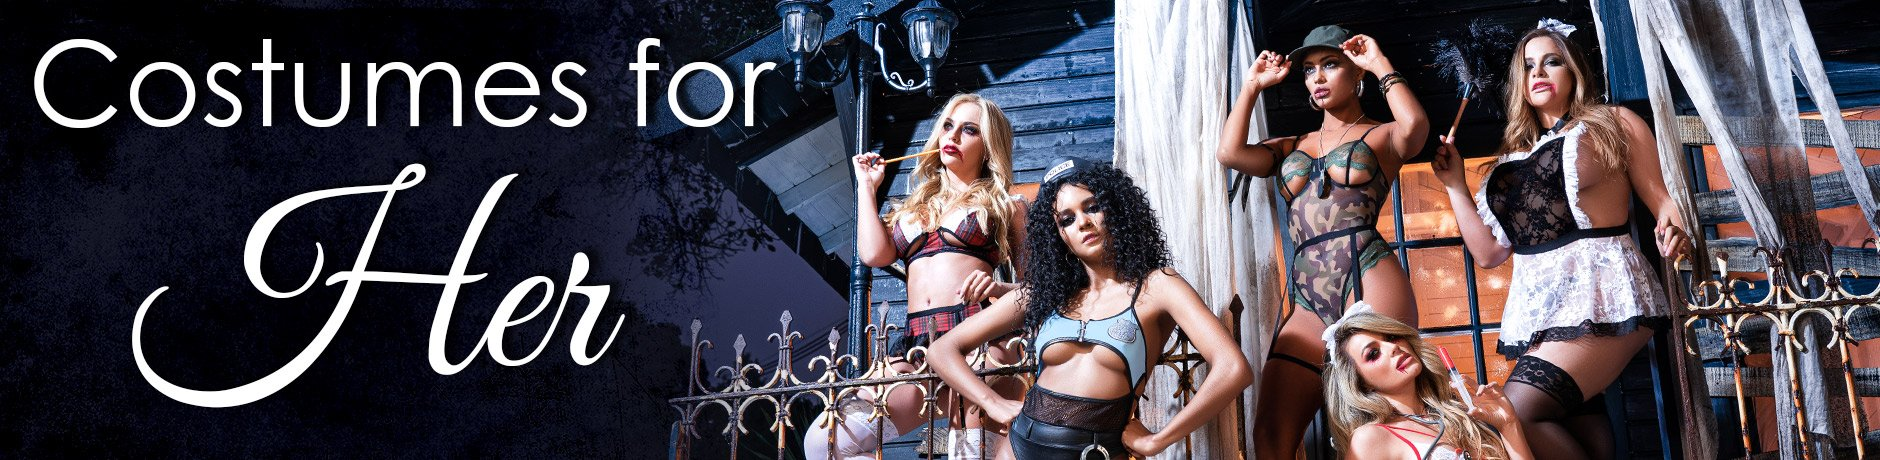 Costumes For Her Header image